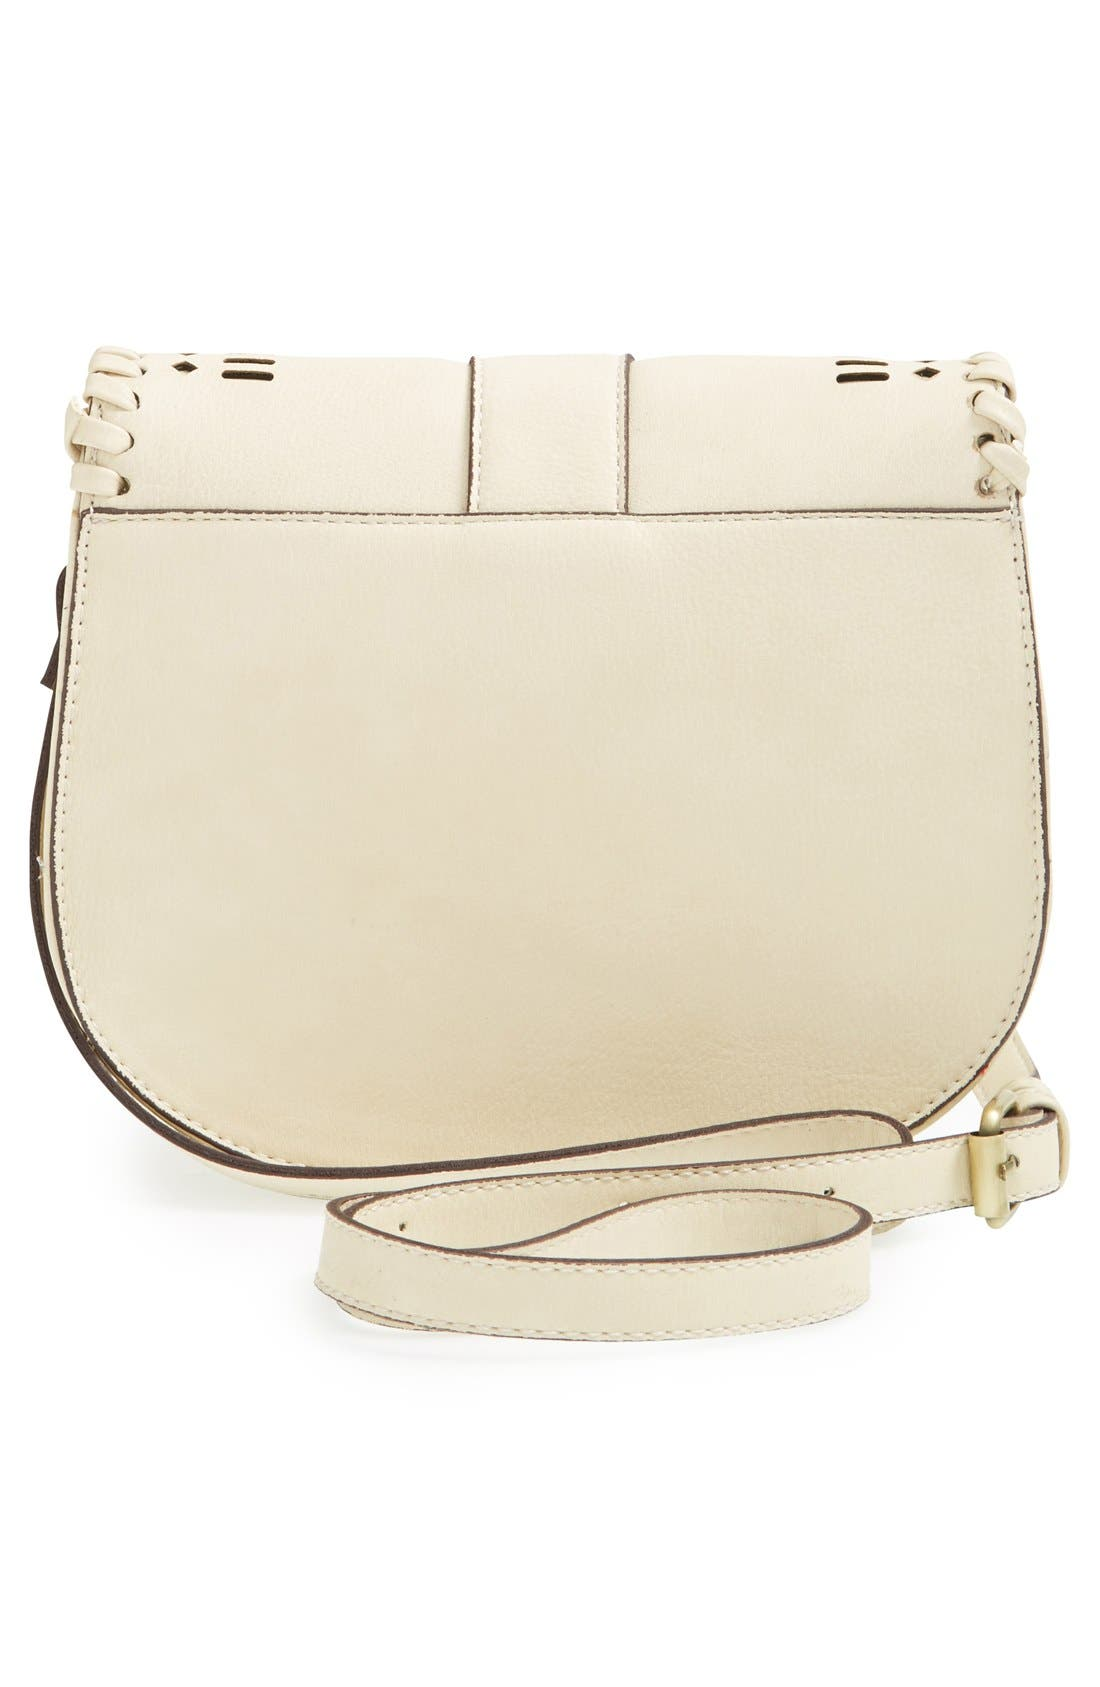 'Kianna' Perforated Faux Leather Crossbody Bag,                             Alternate thumbnail 2, color,                             Ivory